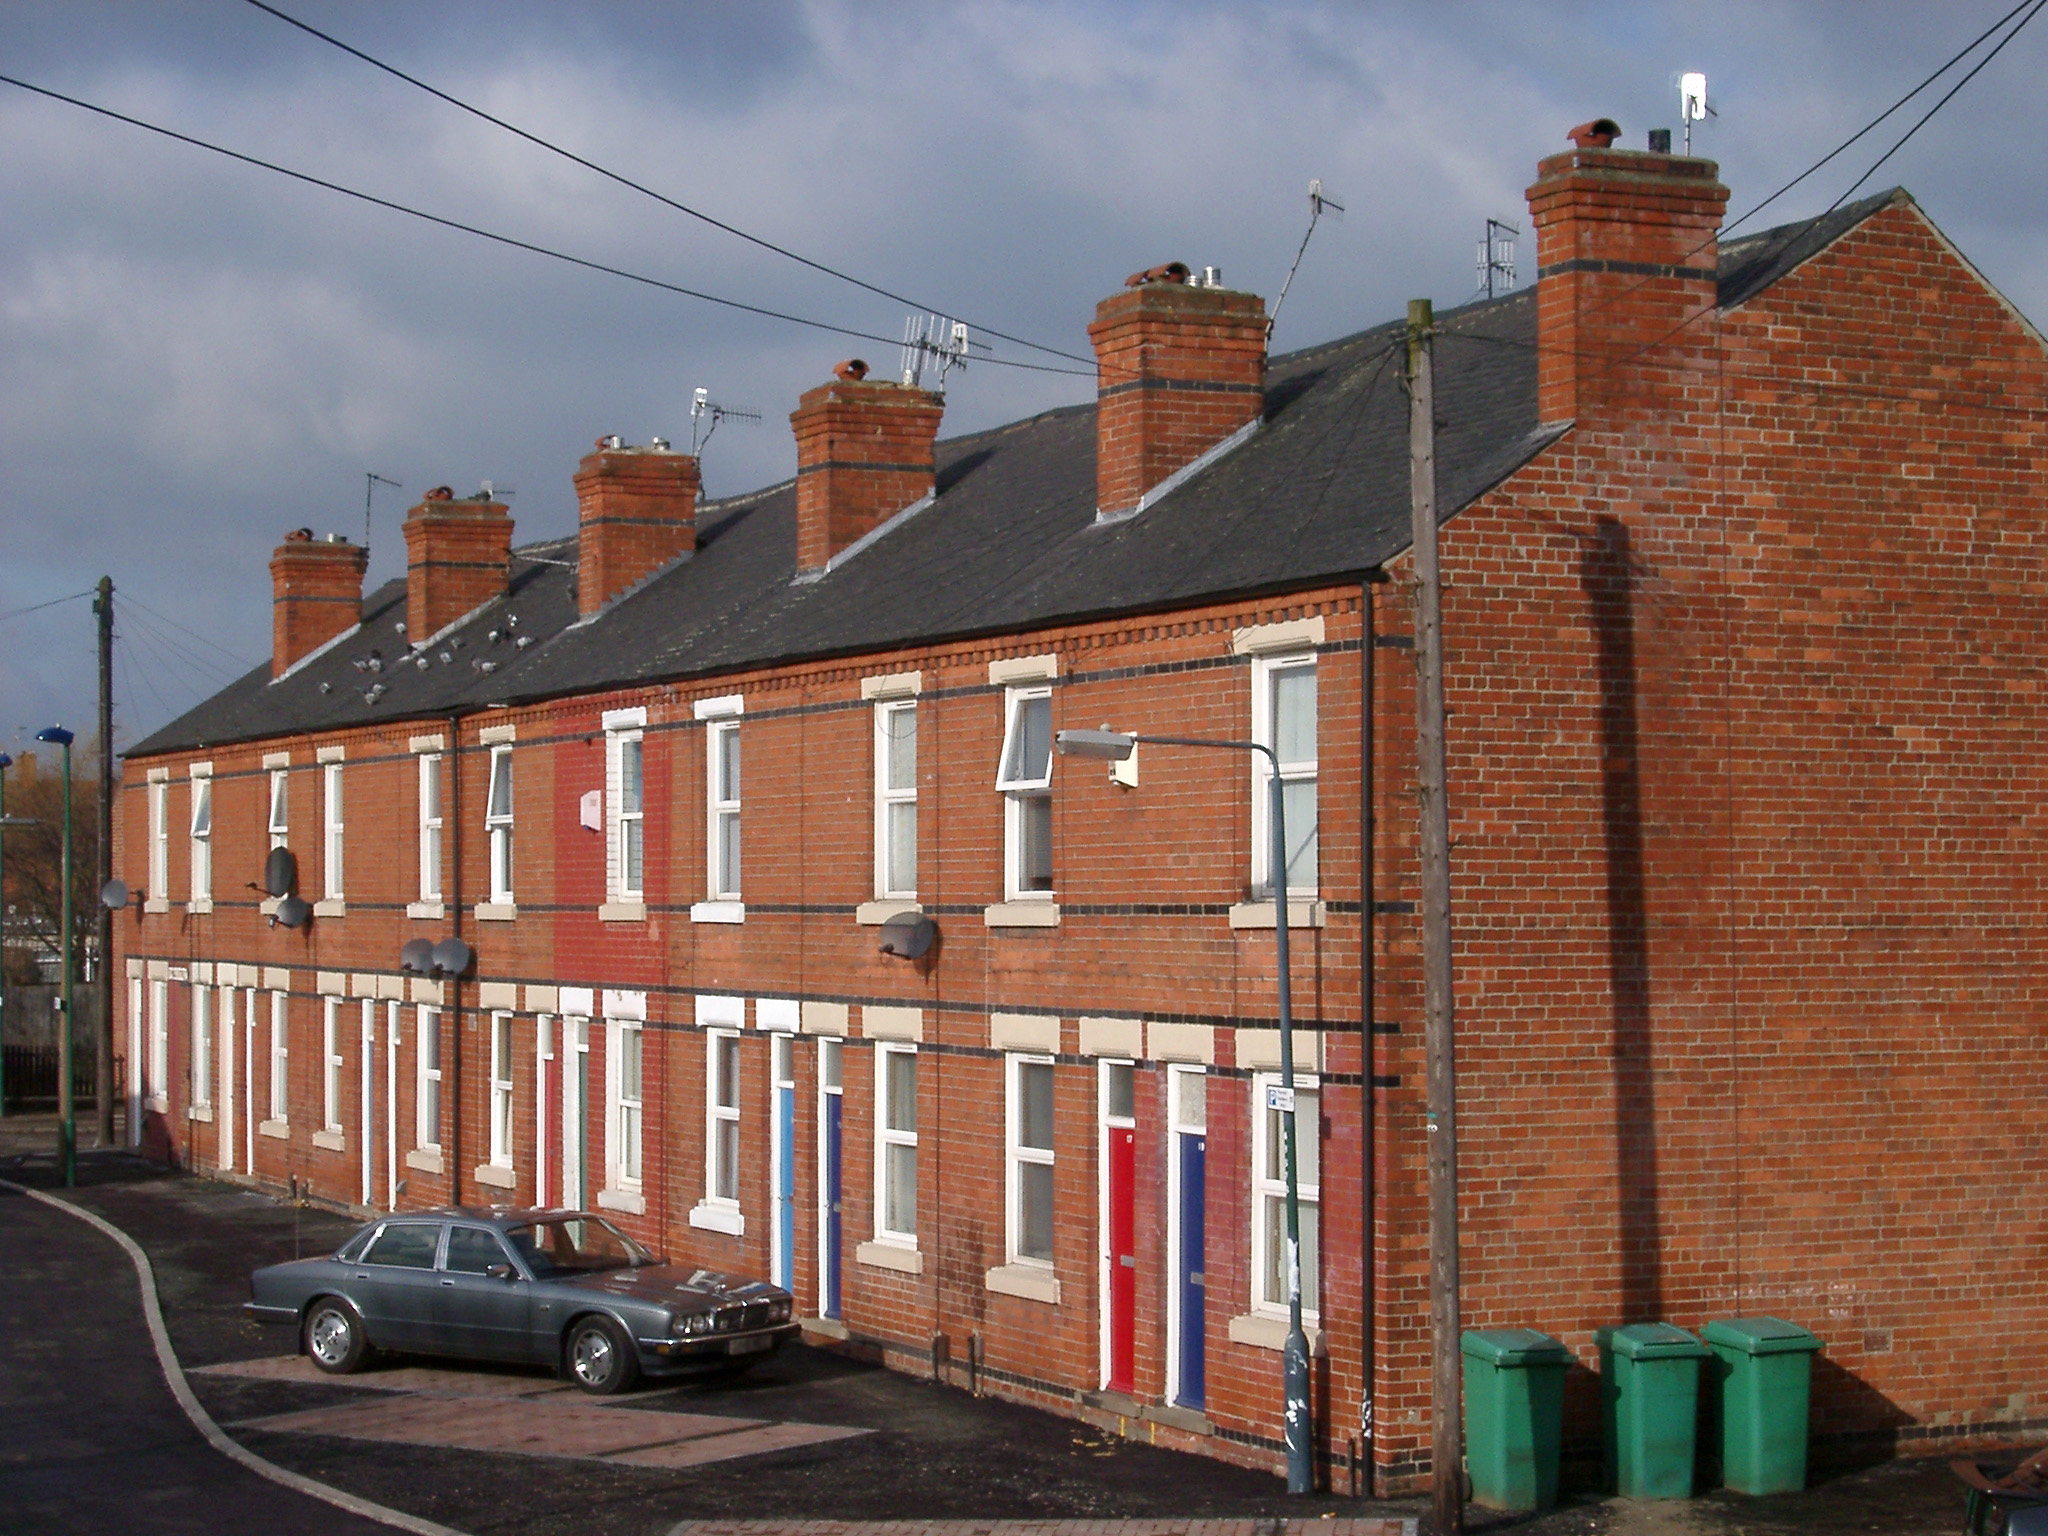 Free stock photo of red brick terraced houses for Terrace in house